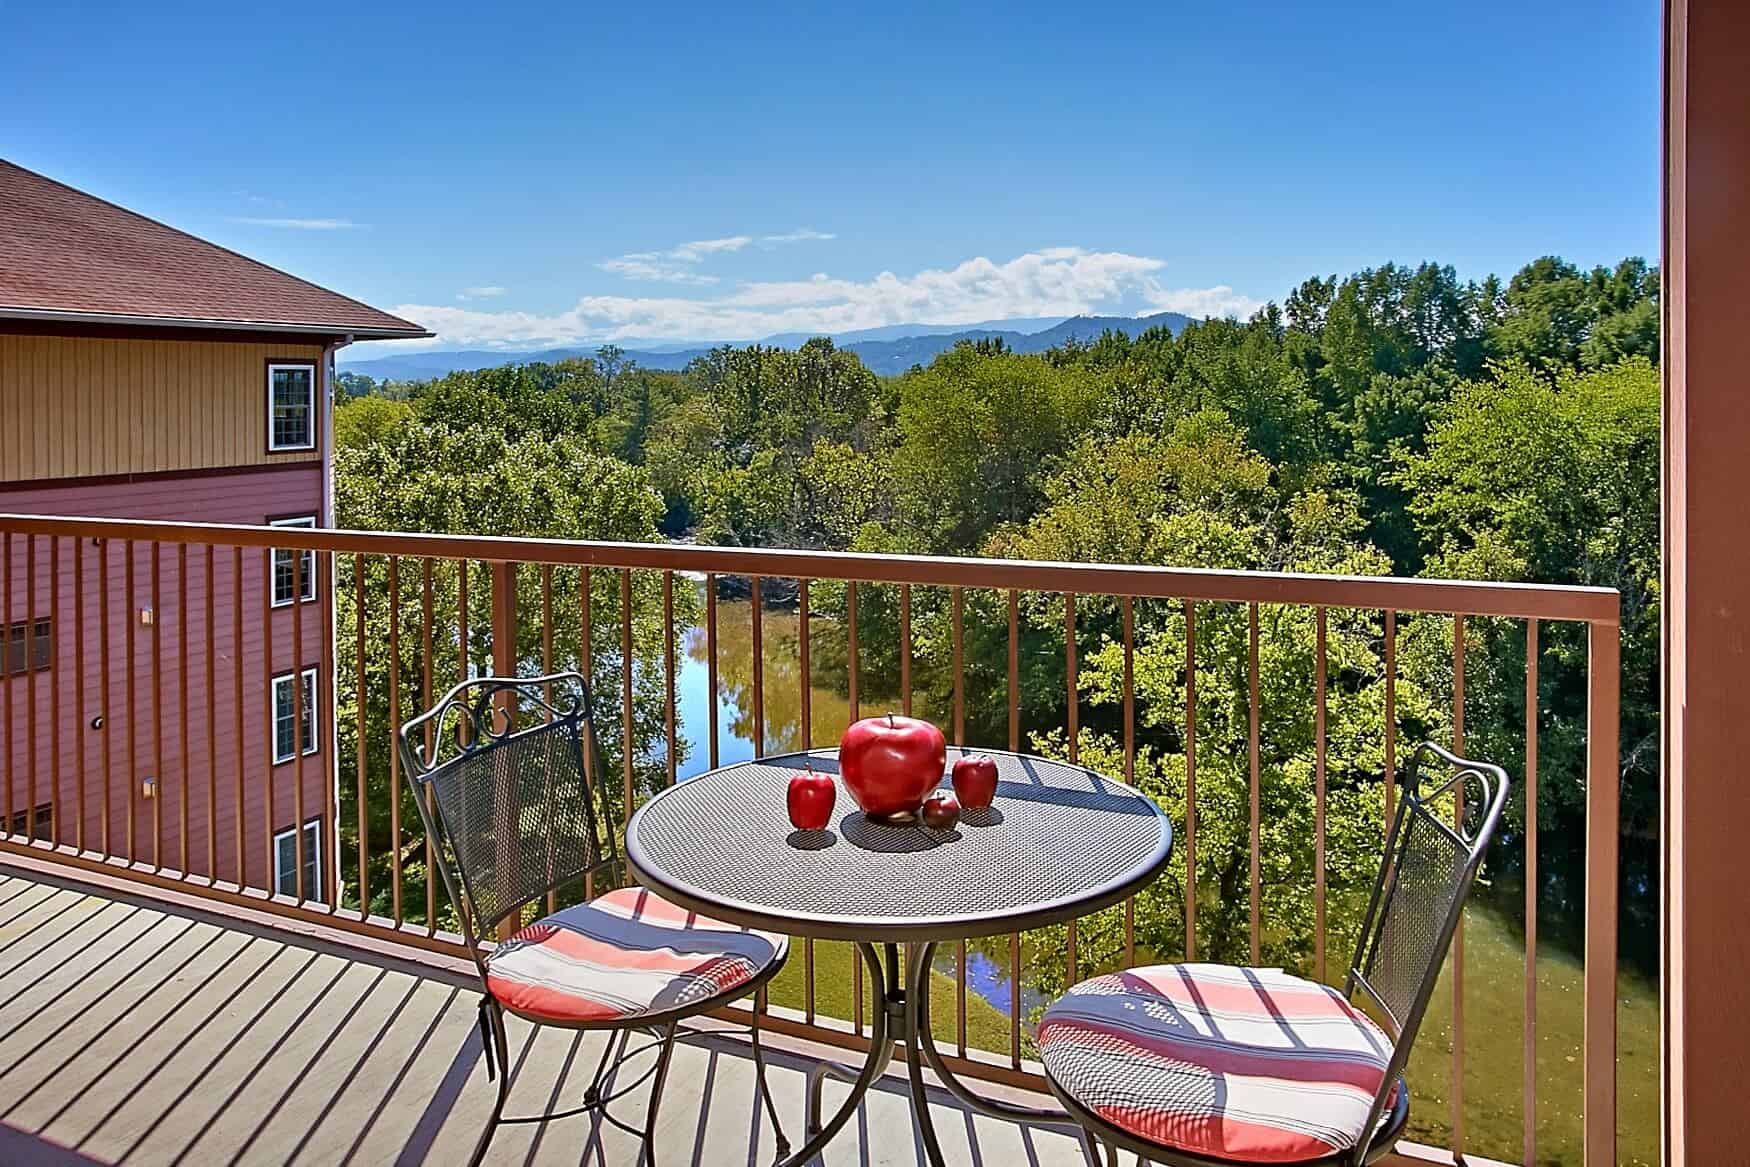 Condo rental with a view of the Smoky Mountains